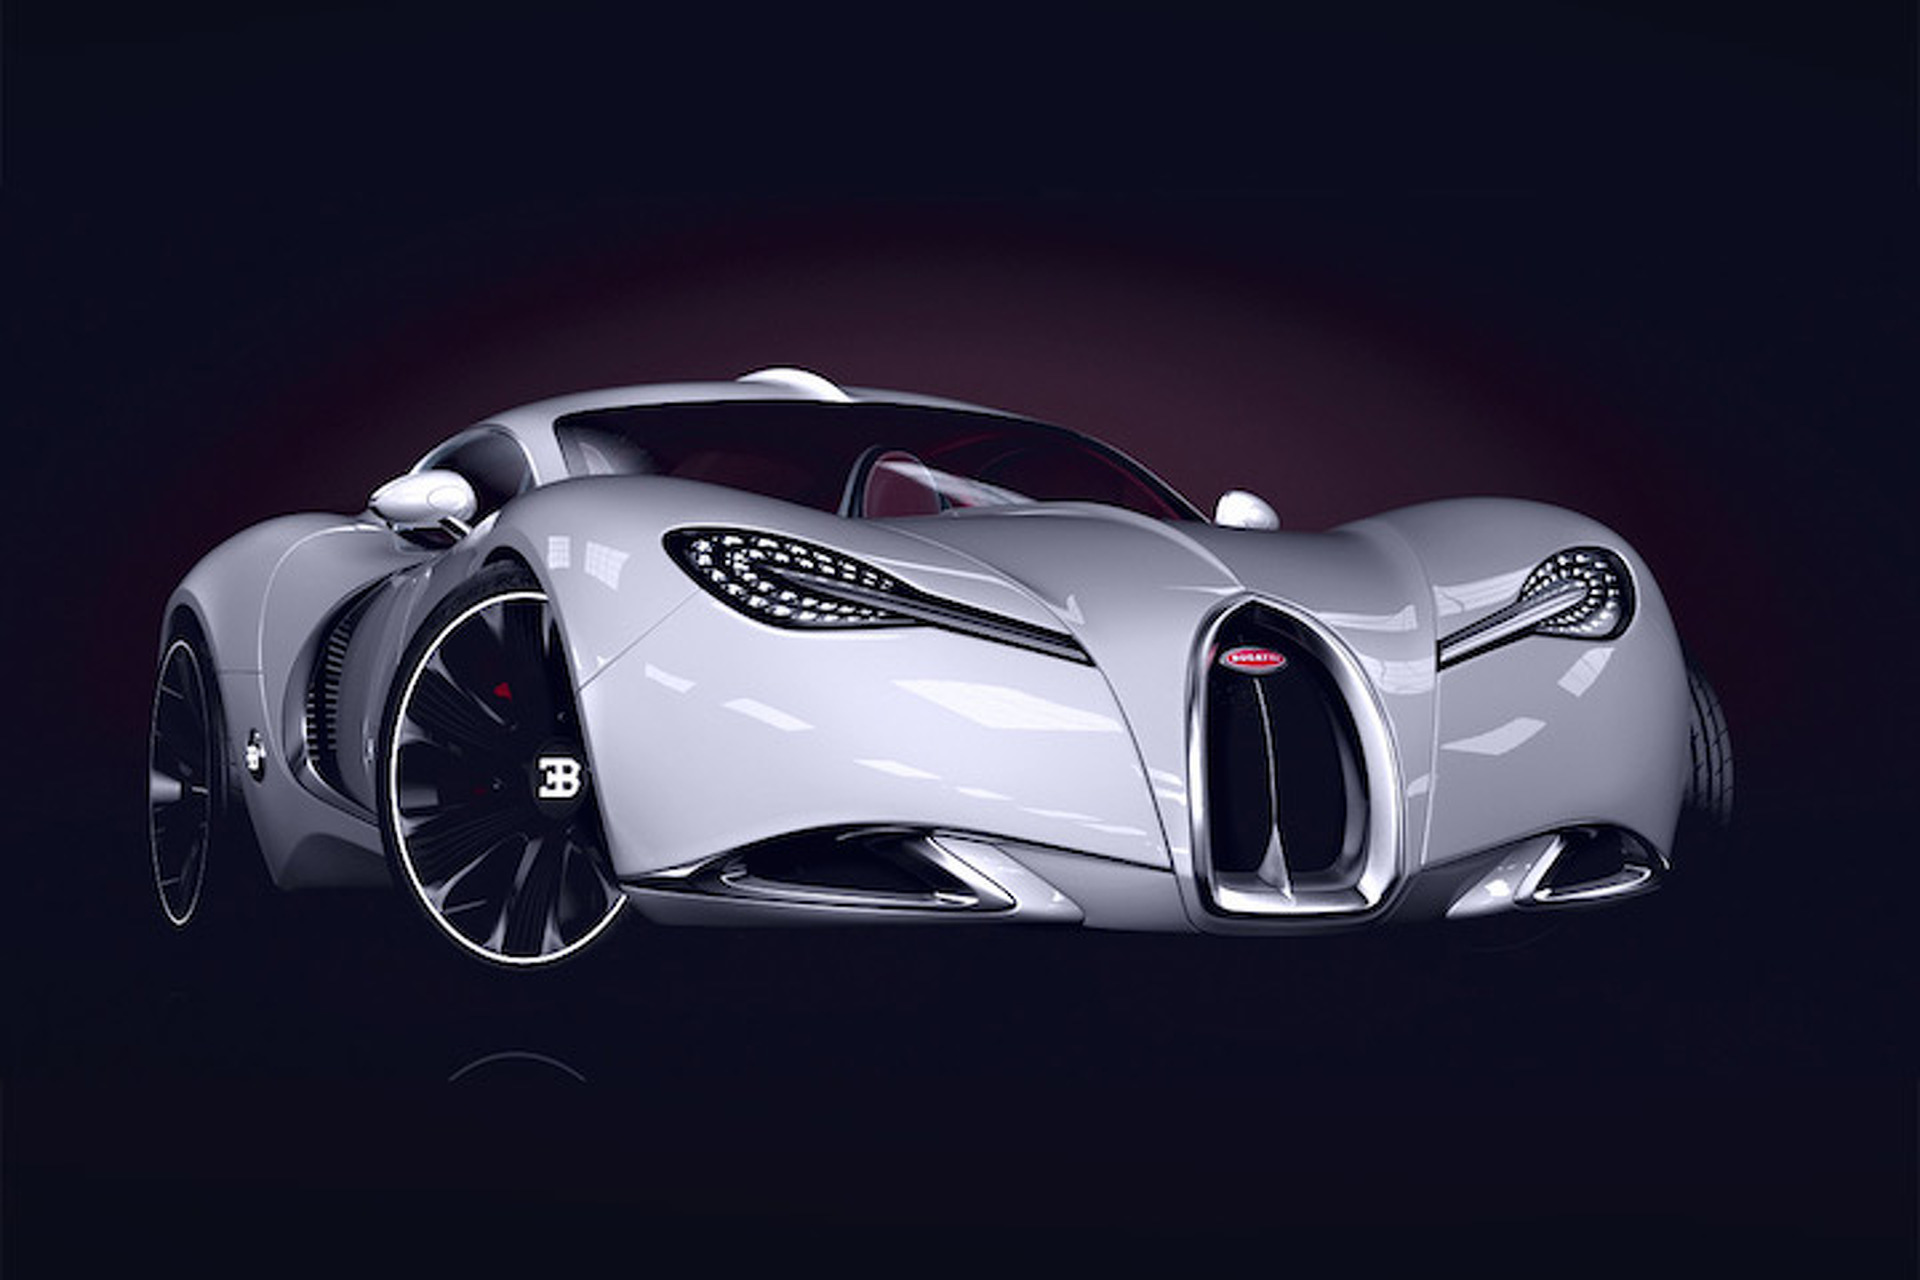 Bugatti Chiron Coming in 2016 with 1500HP